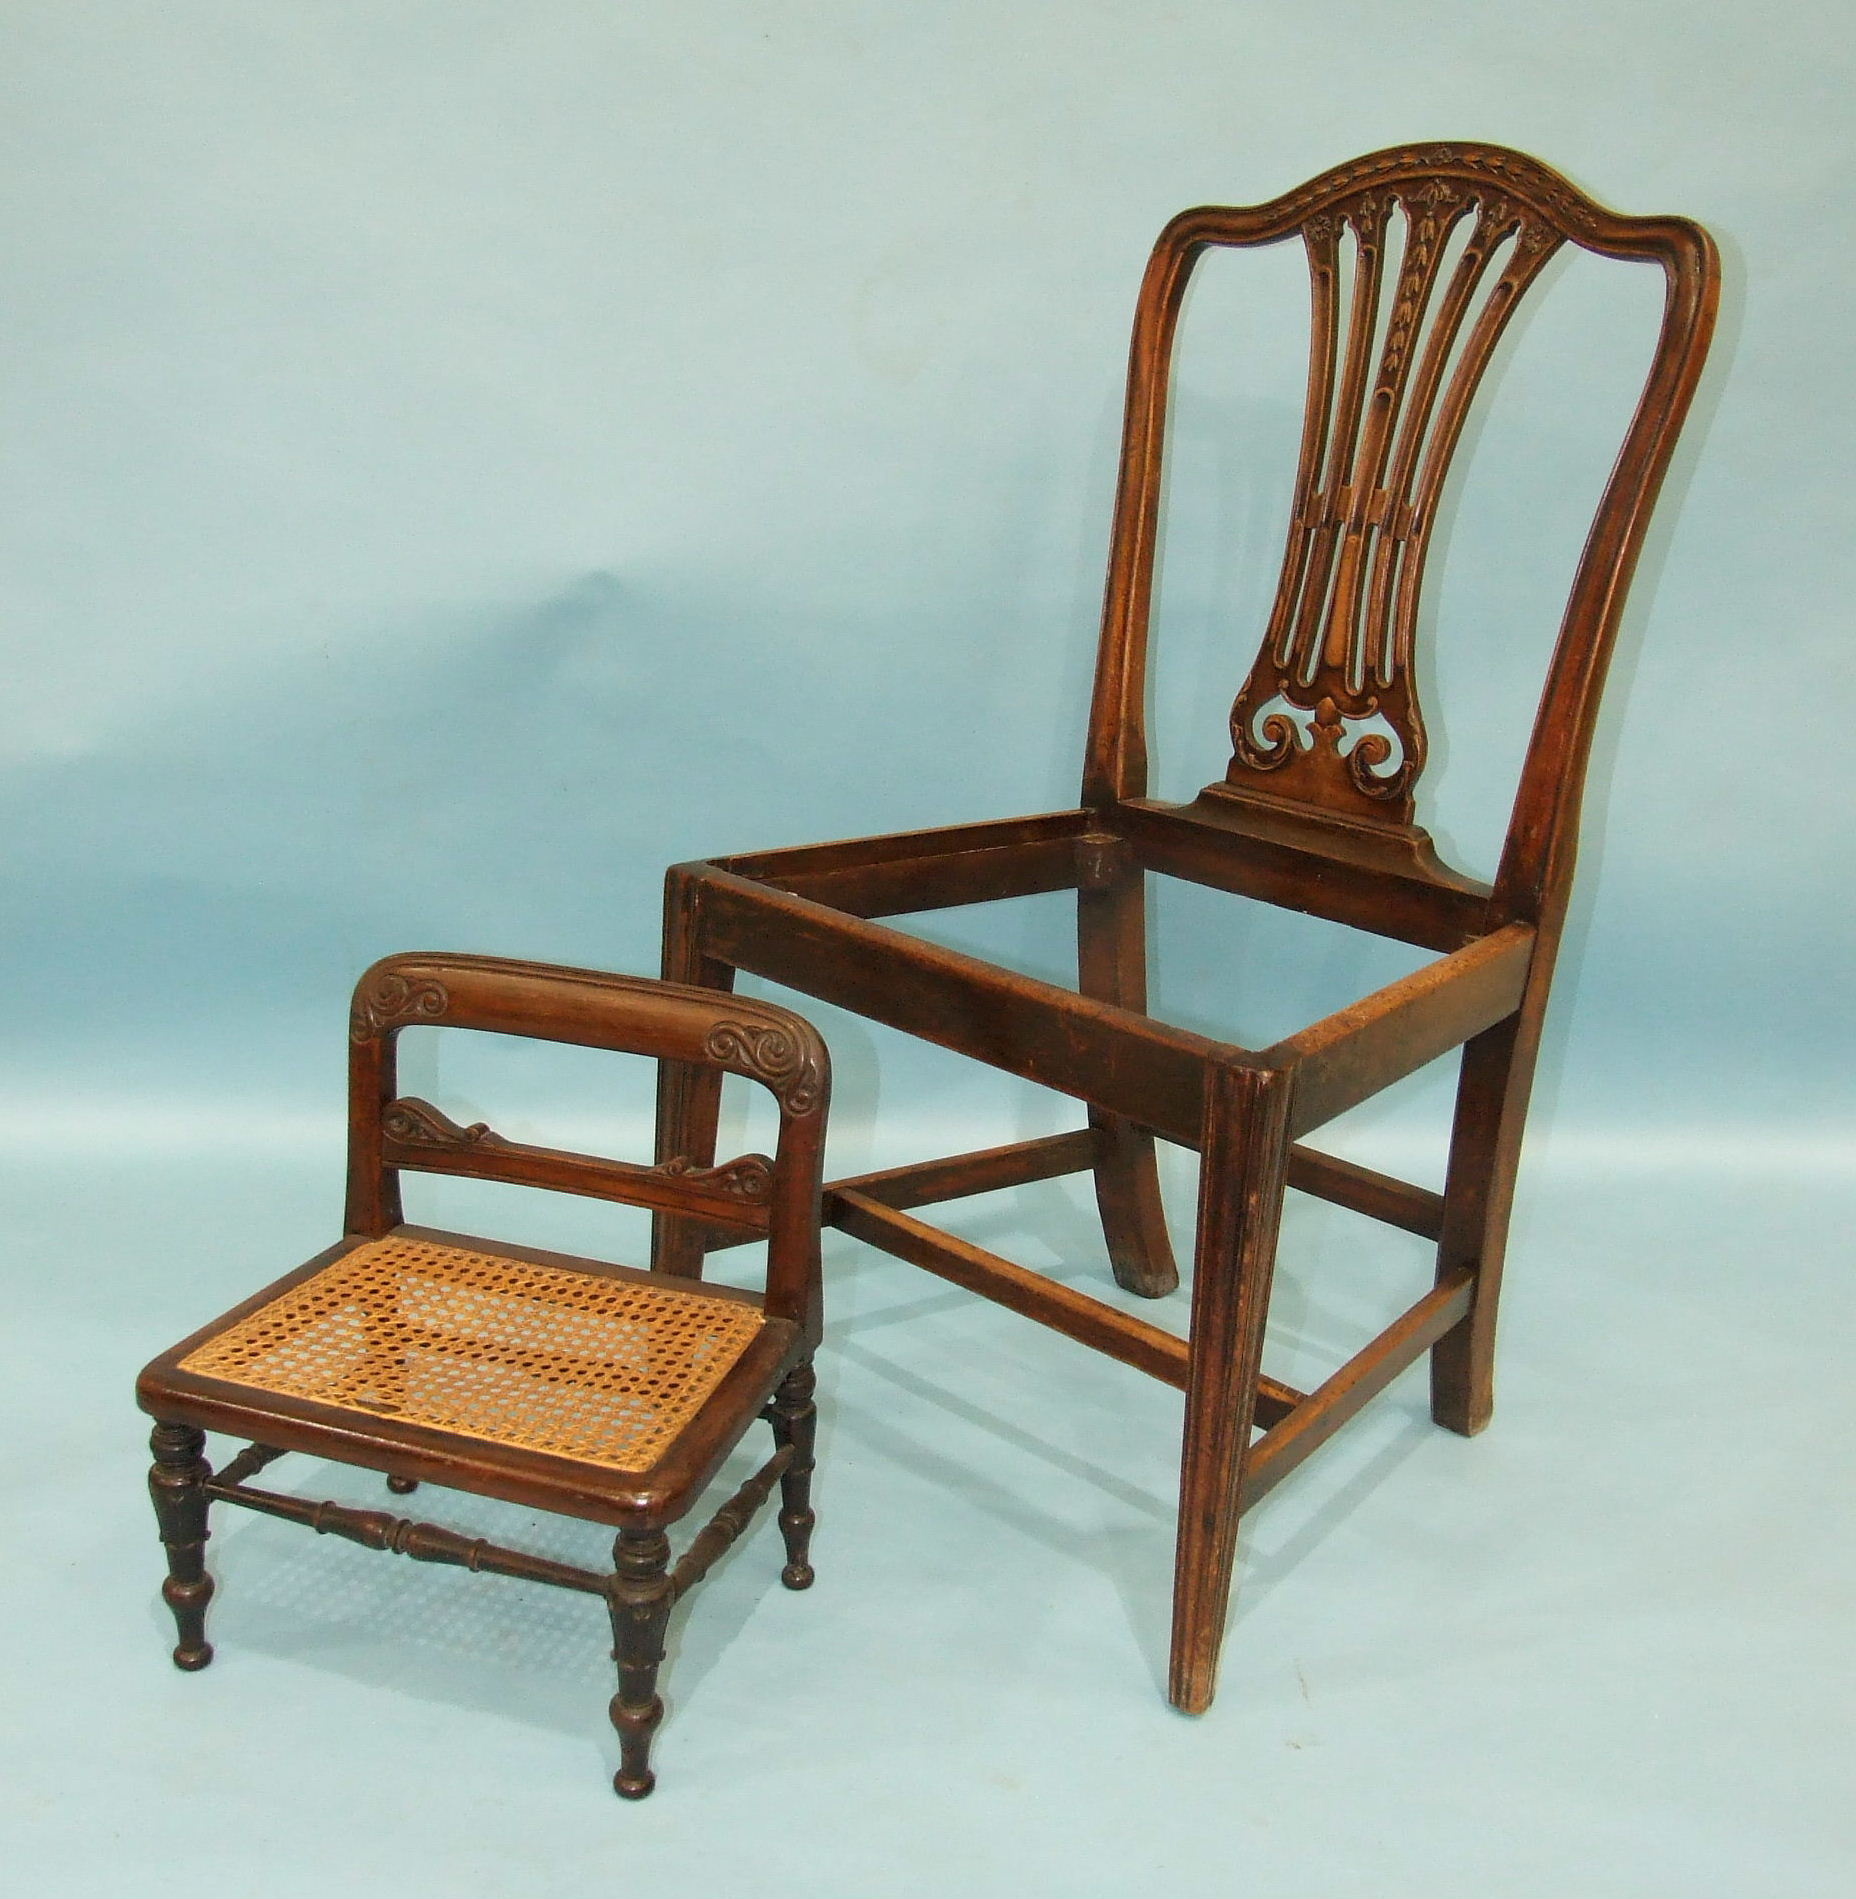 Lot 78 - A 19th century rosewood child's chair with cane seat and carved turned legs, 33cm wide, 41cm high.